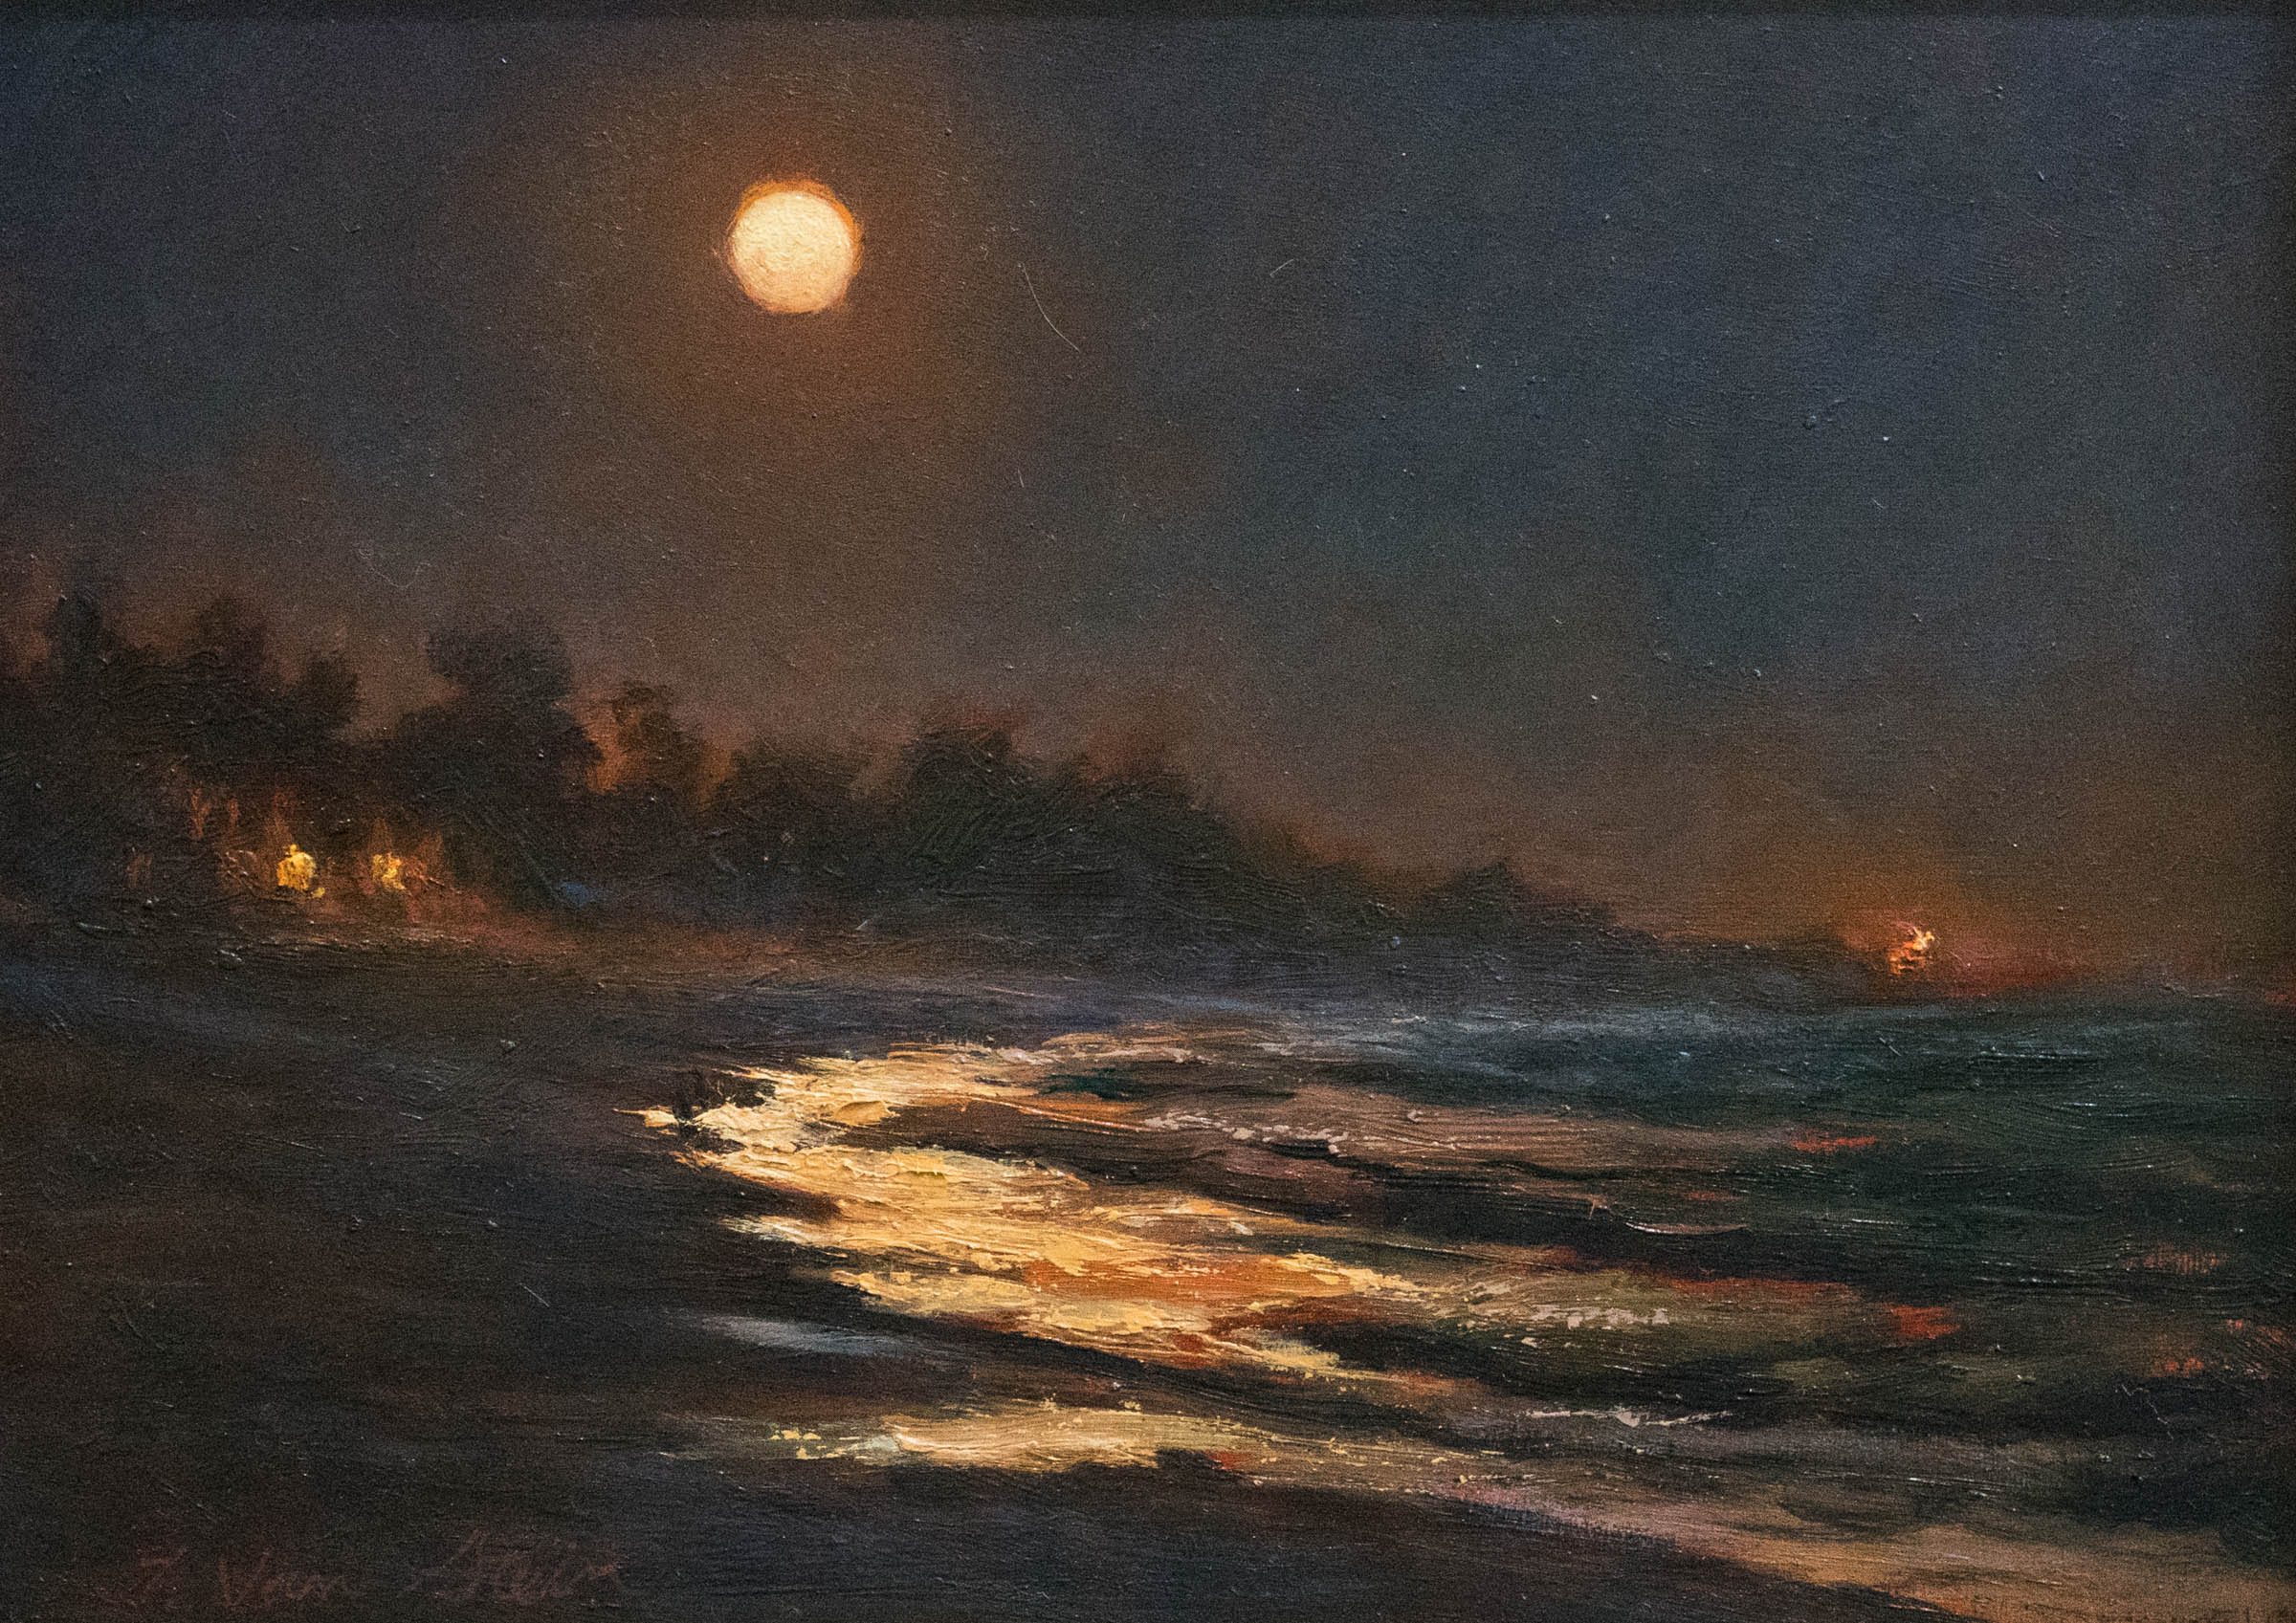 Moonrise, Carpinteria Beach, Thomas Van Stein -- SOLD